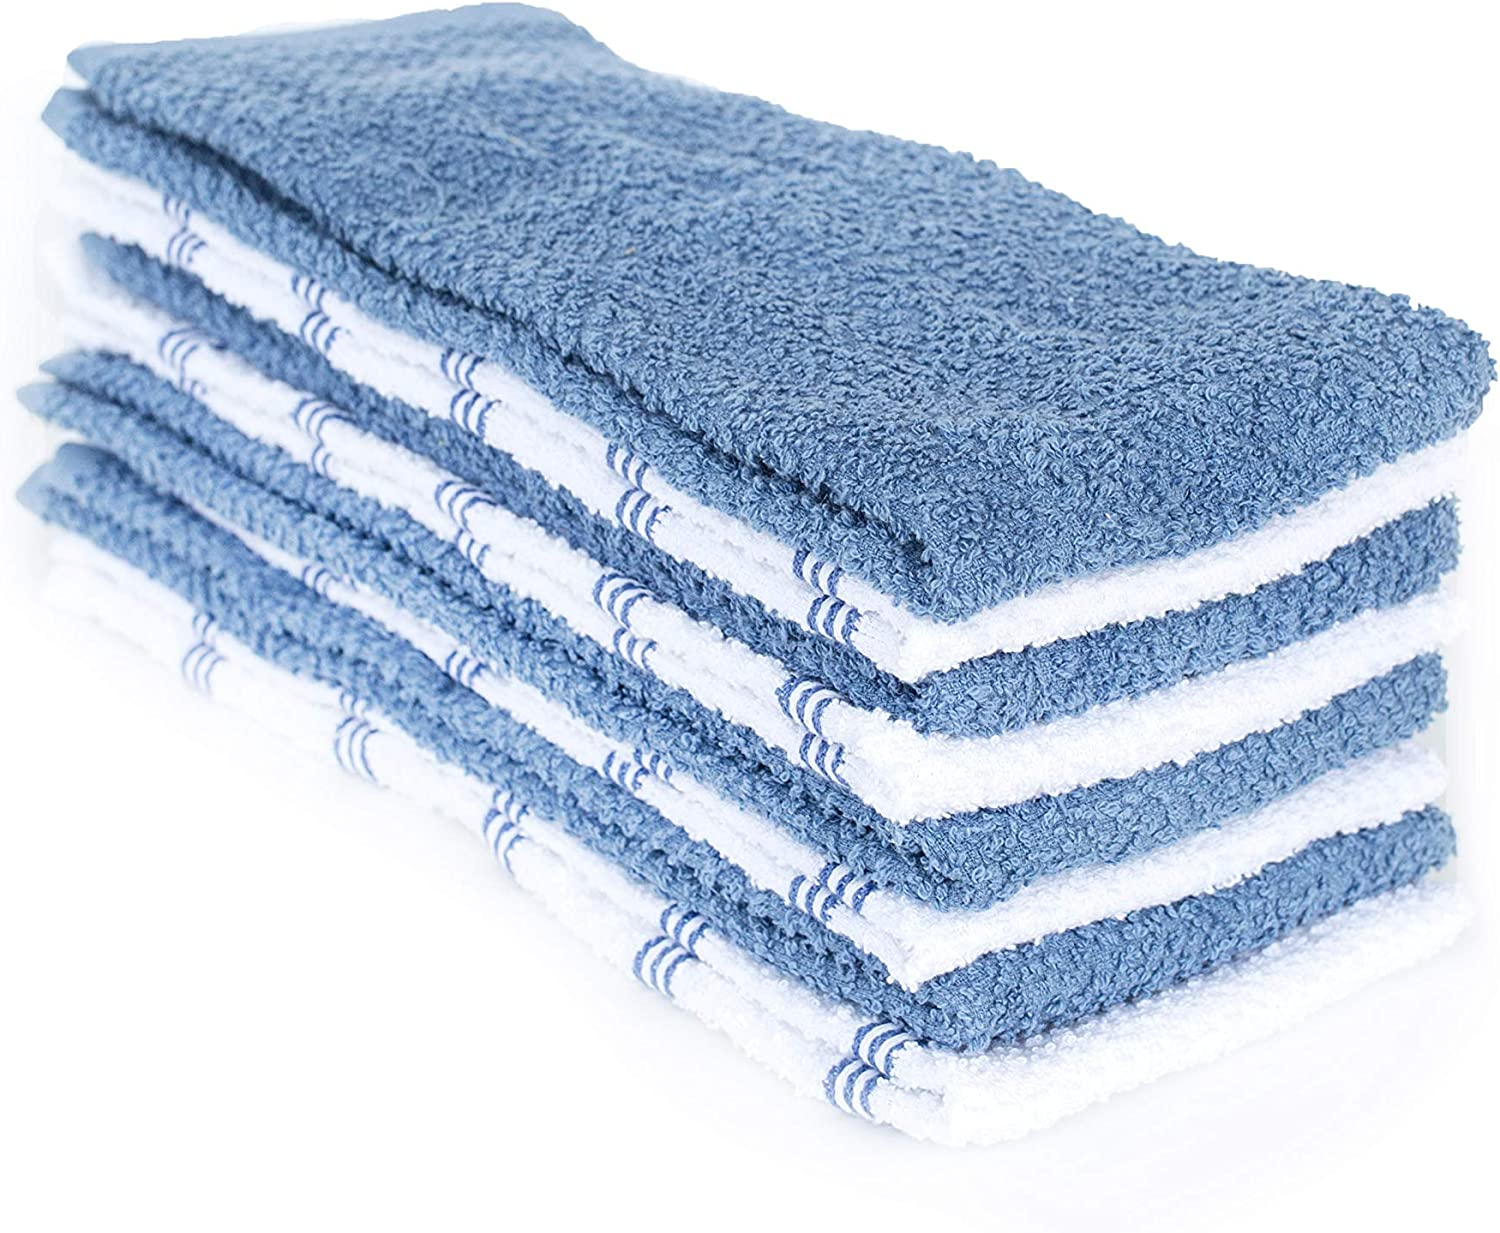 Kaf Home Pantry Set Of 8 Piedmont Kitchen Towels Set Of 8 16x26 Inches Ultra Absorbent Terry Cloth Dish Towels Dark Gray Dutch Blue Kitchen Towel 16x26 Amazon Sg Home